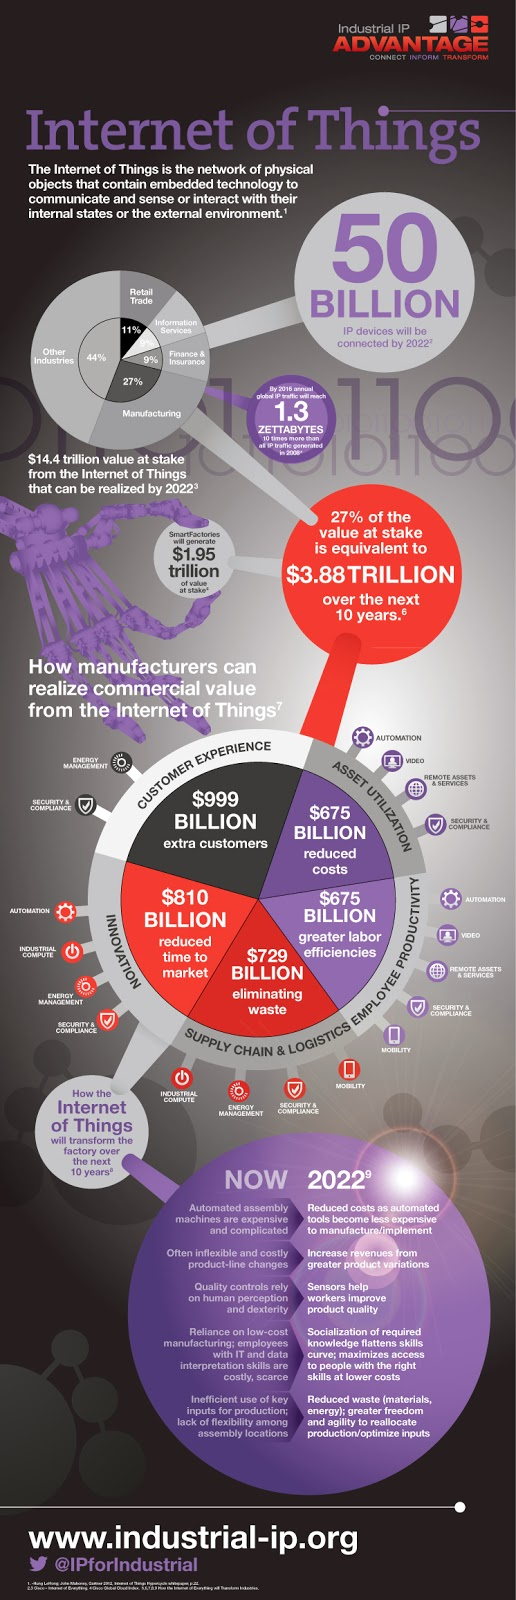 http://pt.scribd.com/doc/196880157/Infographic-Internet-of-Things-pdf